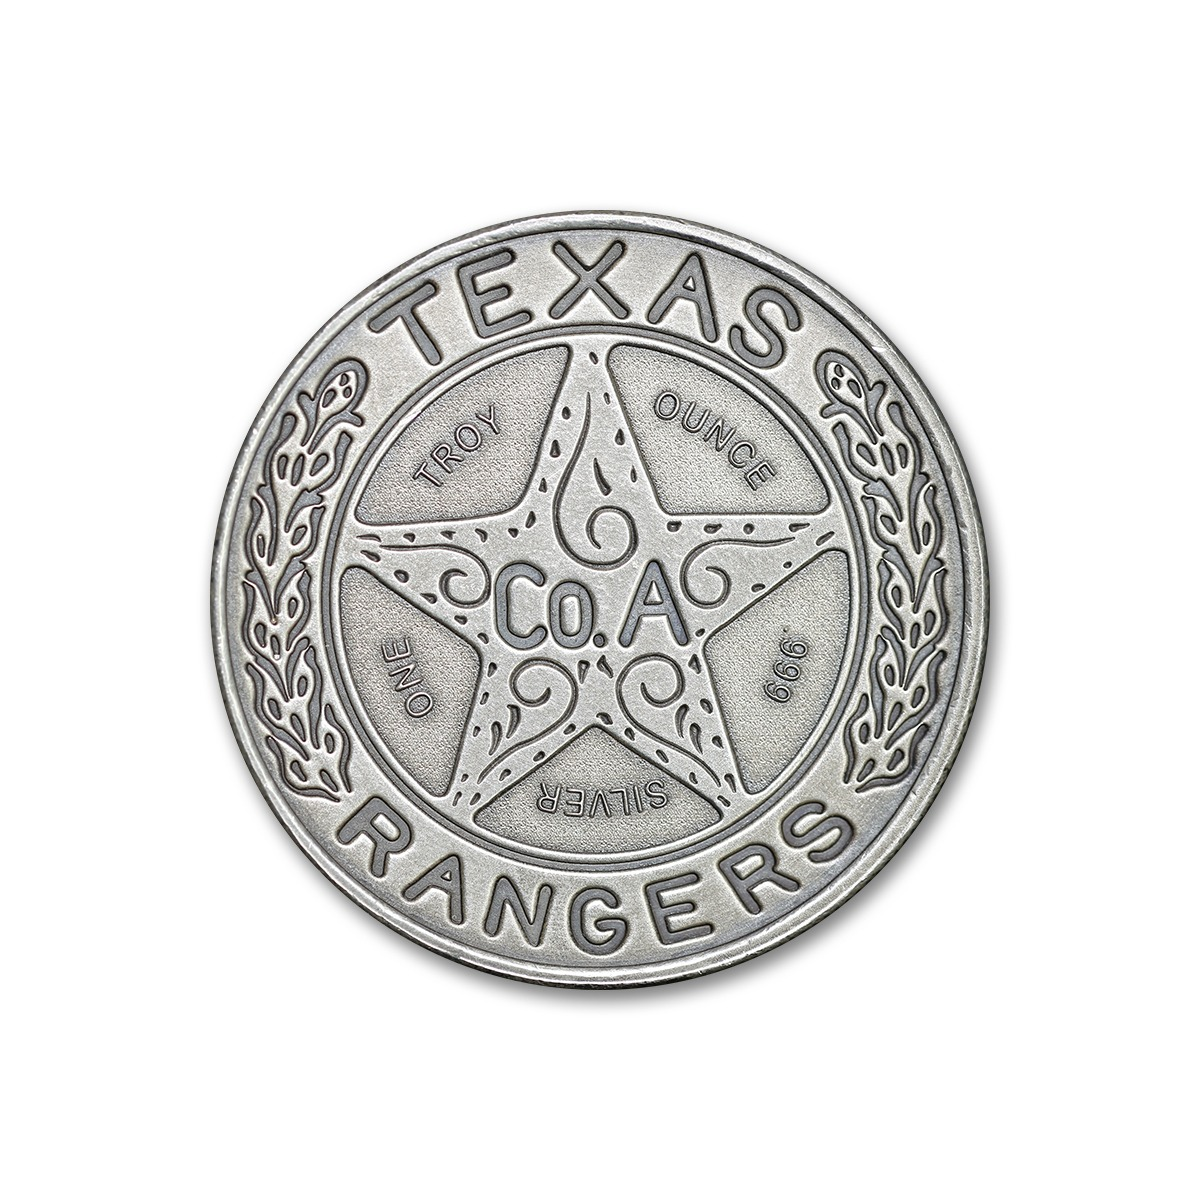 """The Texas Ranger """"Wagon-Wheel"""" Badge Tribute - 1 ozt 39mm .999 Fine Silver Art Medal with Antique Finish"""